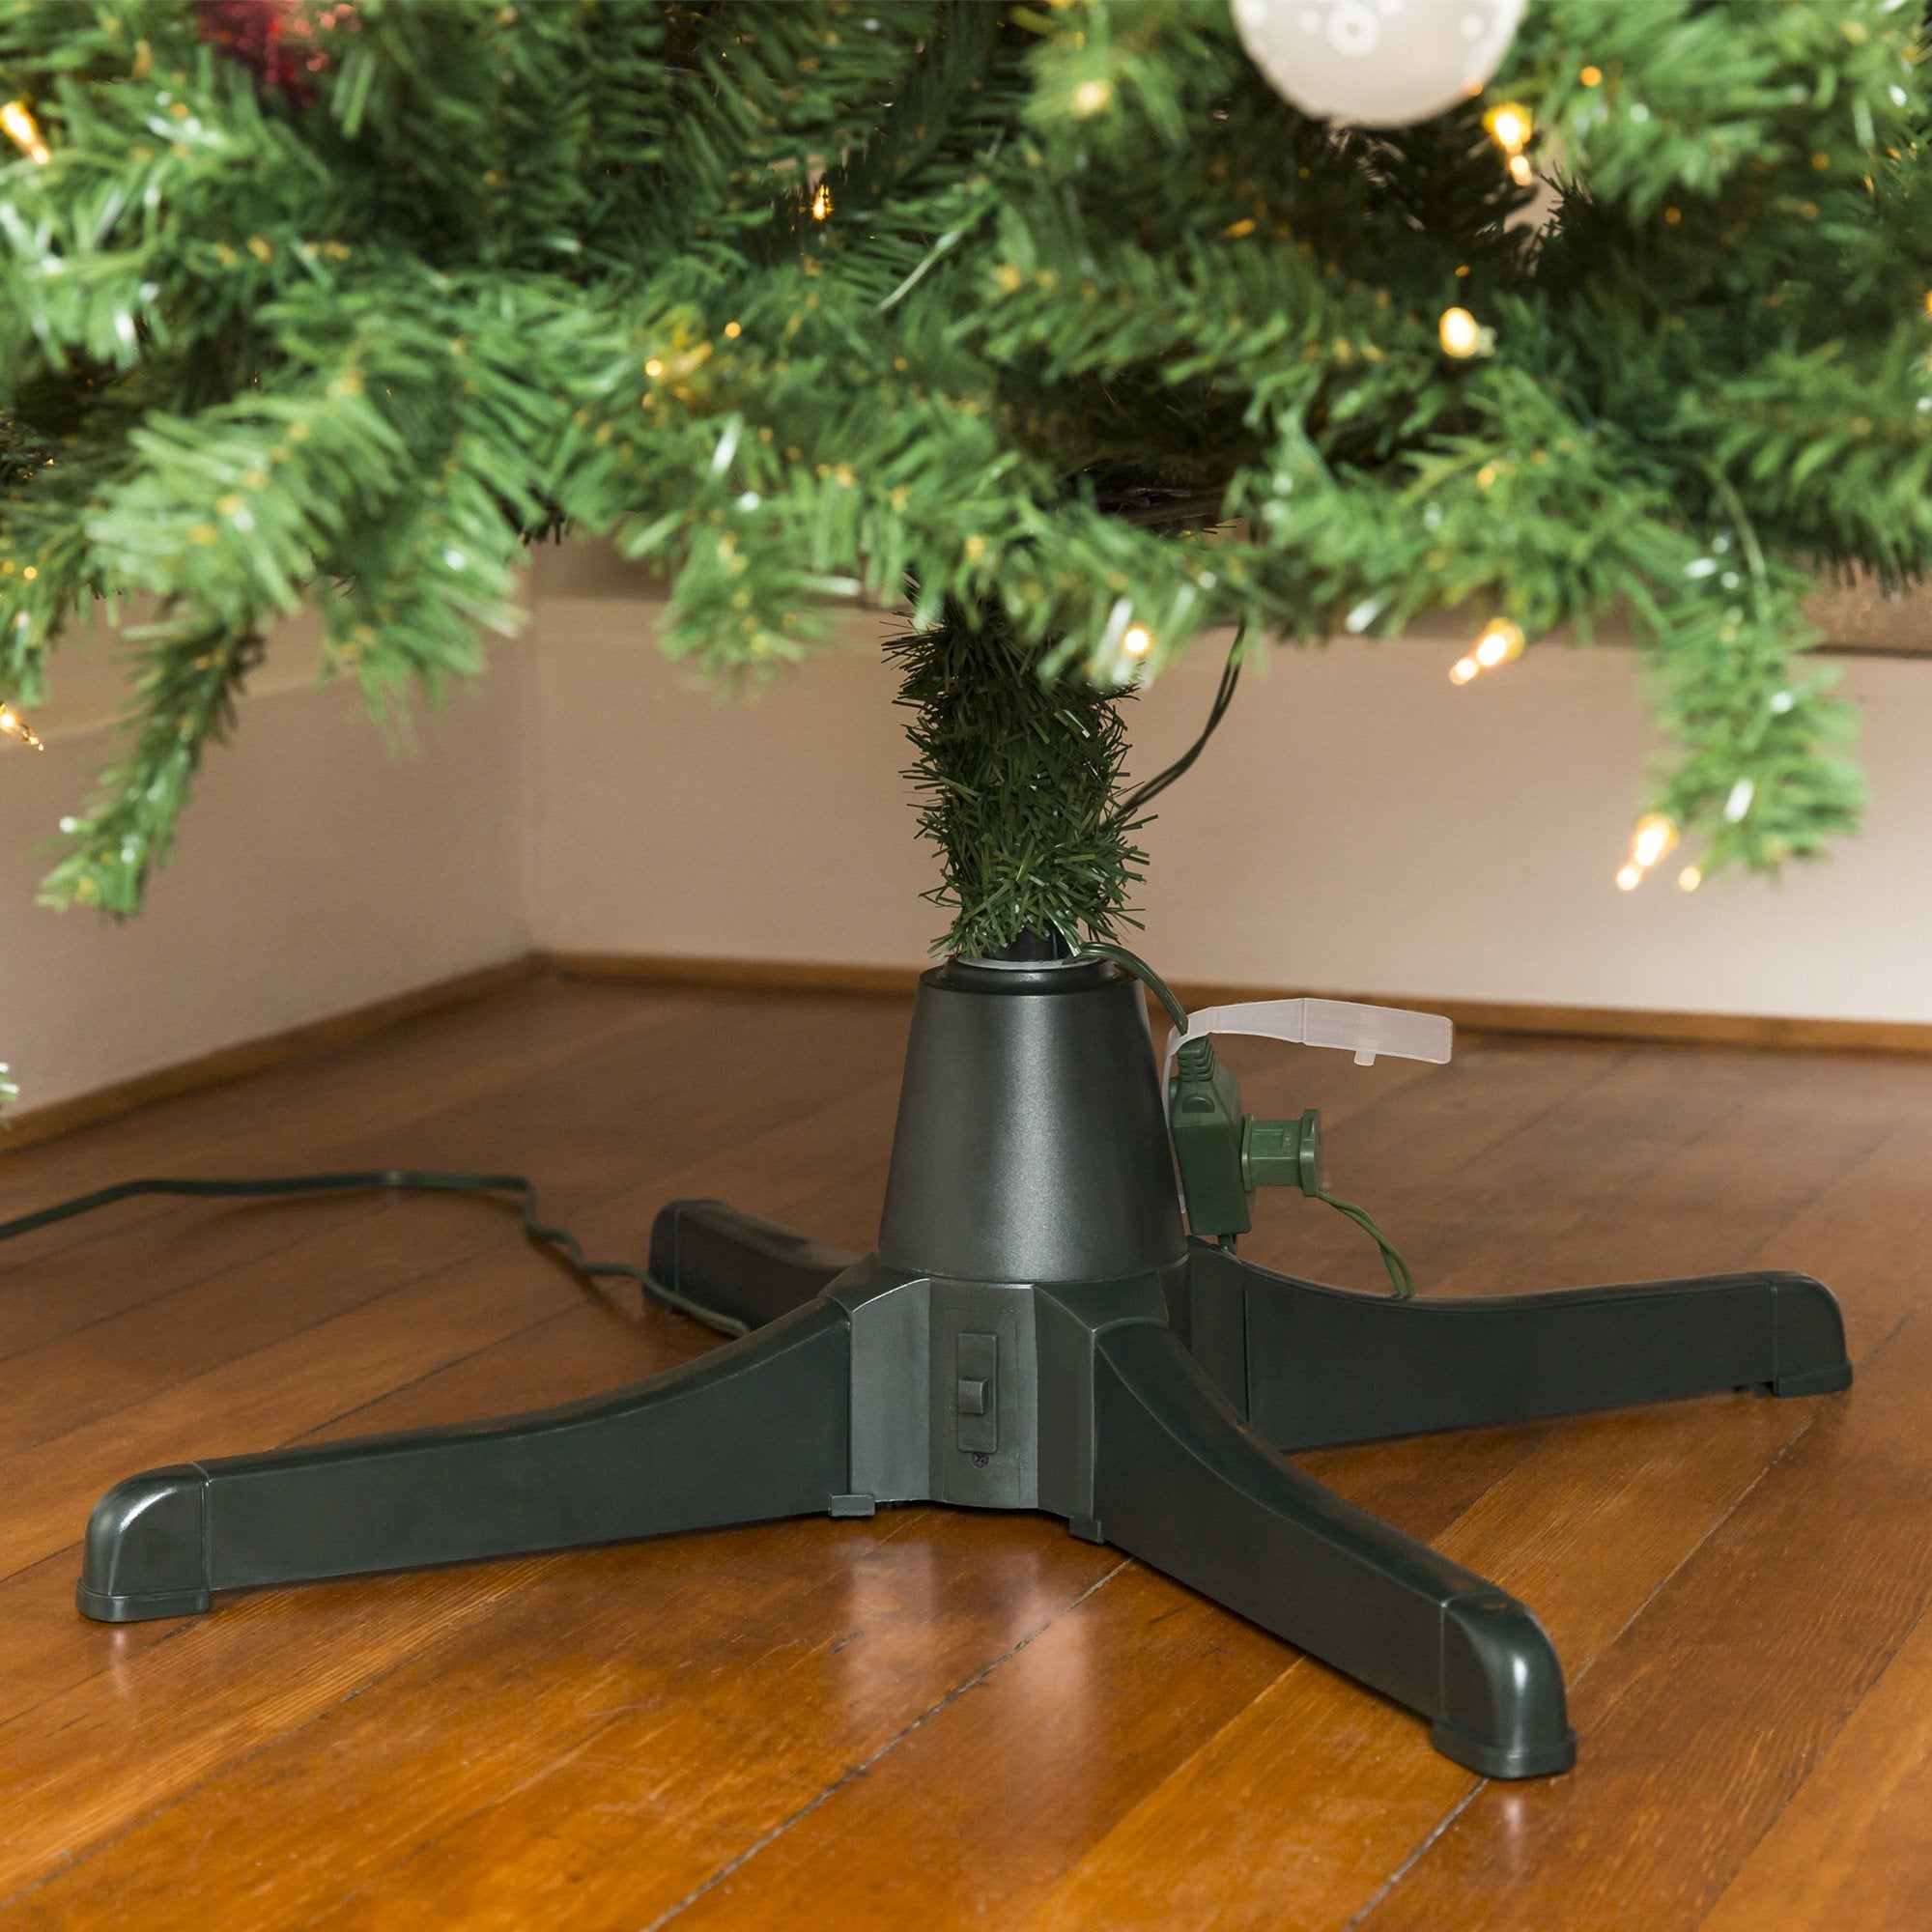 360-Degree Rotating Christmas Tree Stand w/ 3 Settings, 3 Outlets